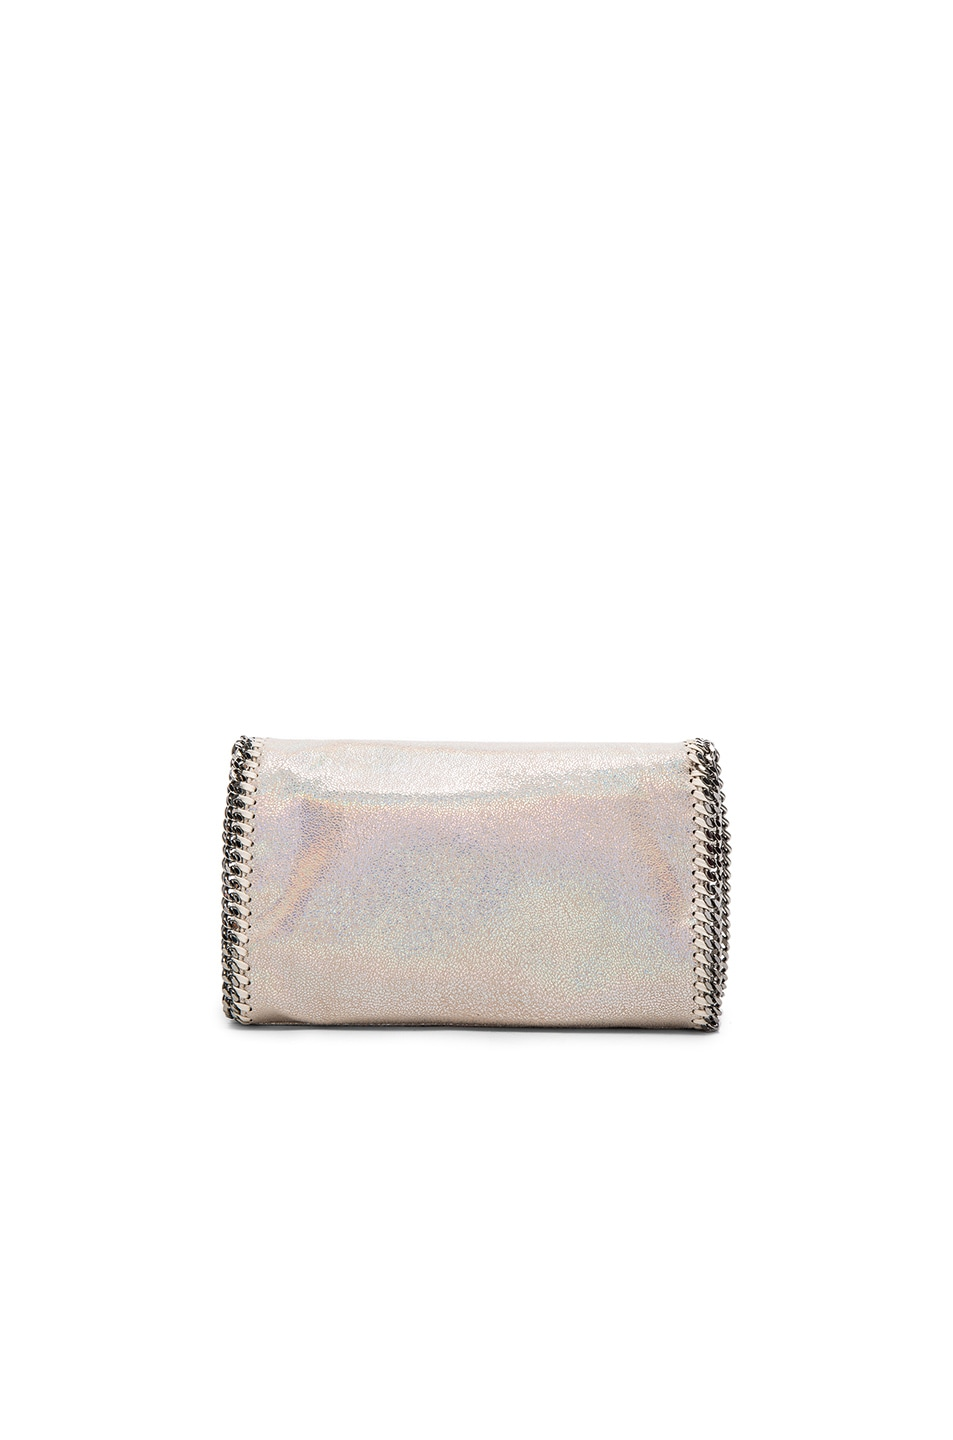 Image 2 of Stella McCartney Falabella Holographic Chamois Fold Over Crossbody in Holo Cream